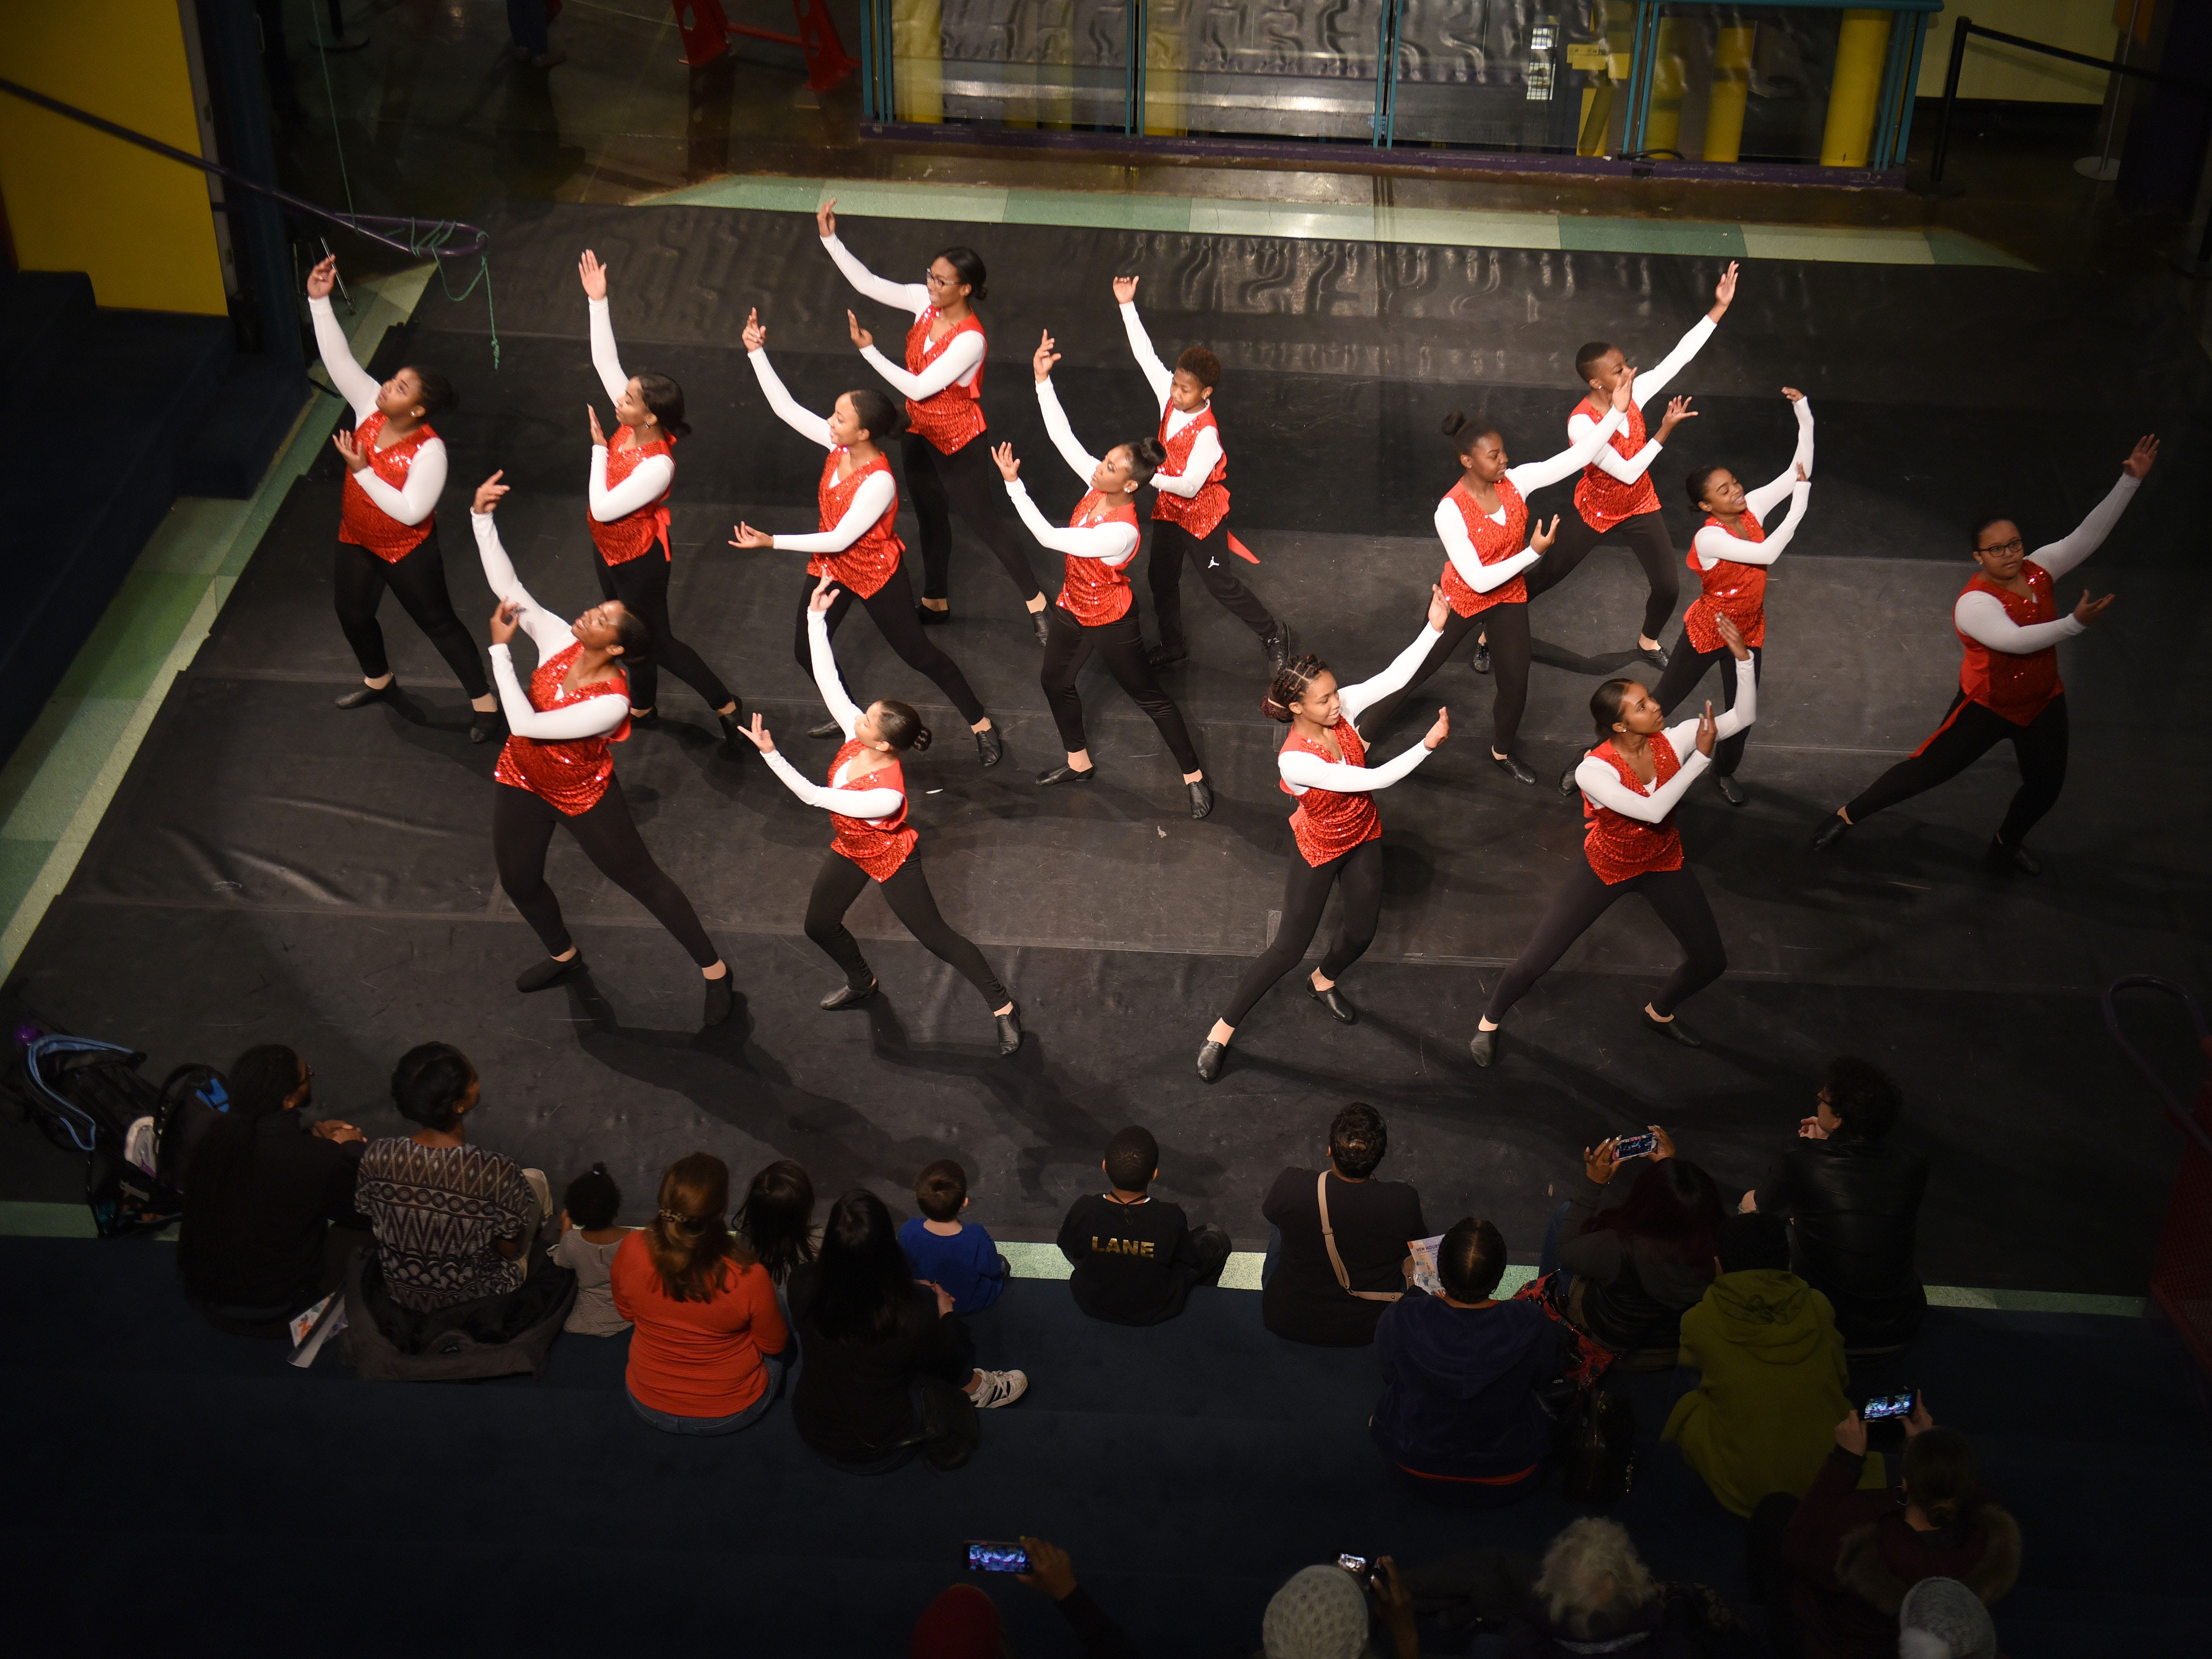 Members of the Marygrove Institute Repertory dancers perform at the Michigan Science Center.